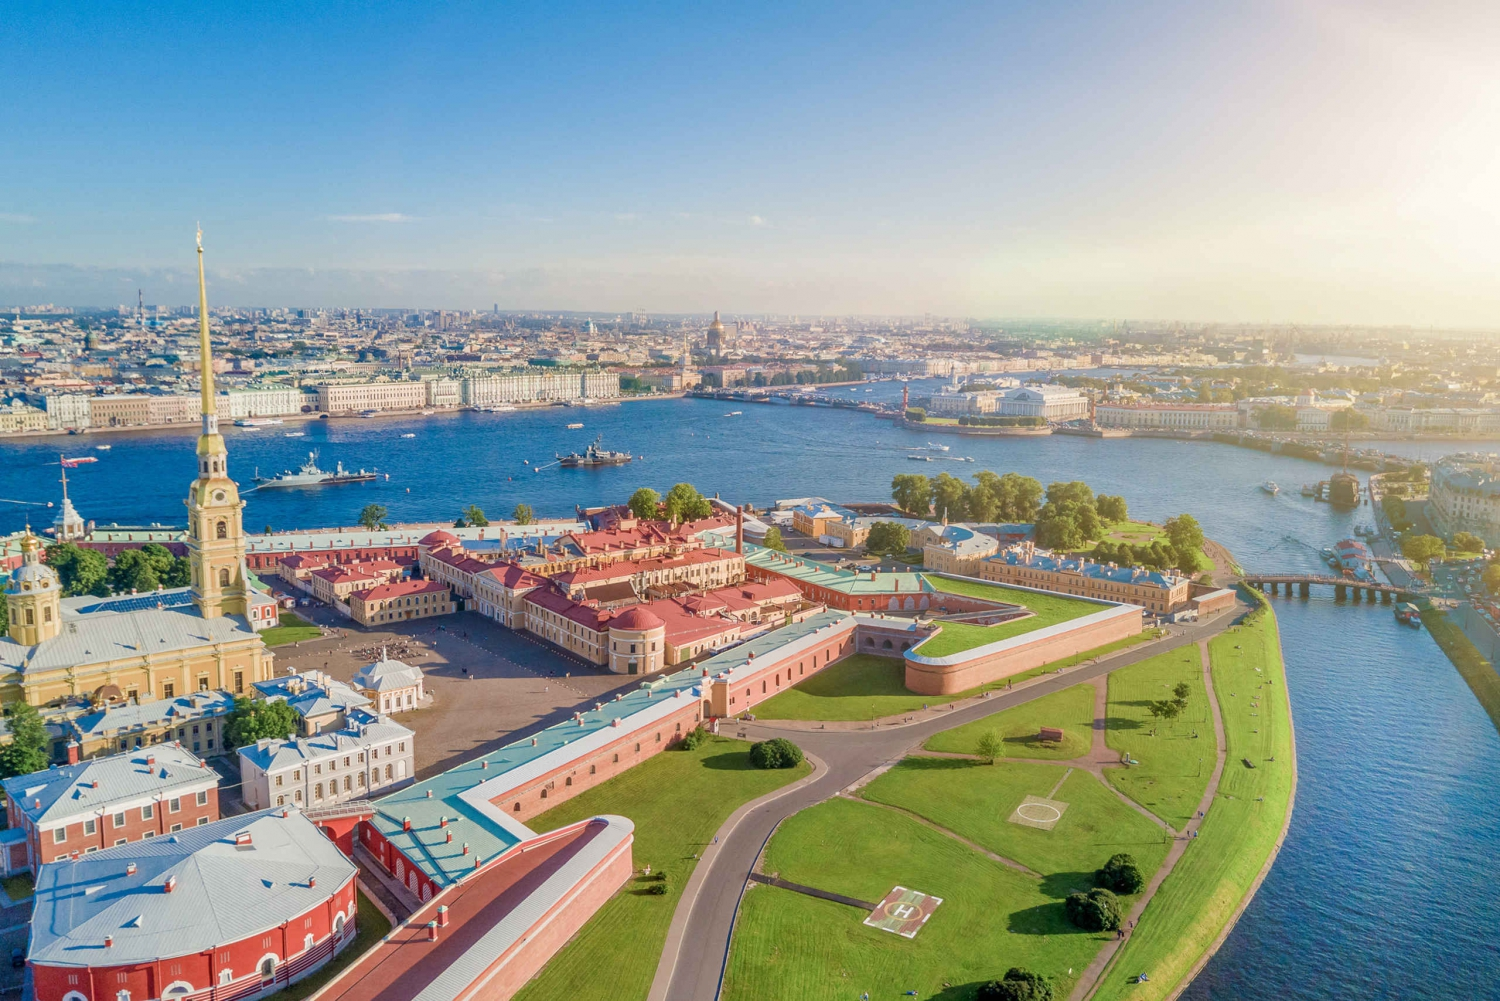 St. Petersburg's Peter and Paul Fortress Walking Tour